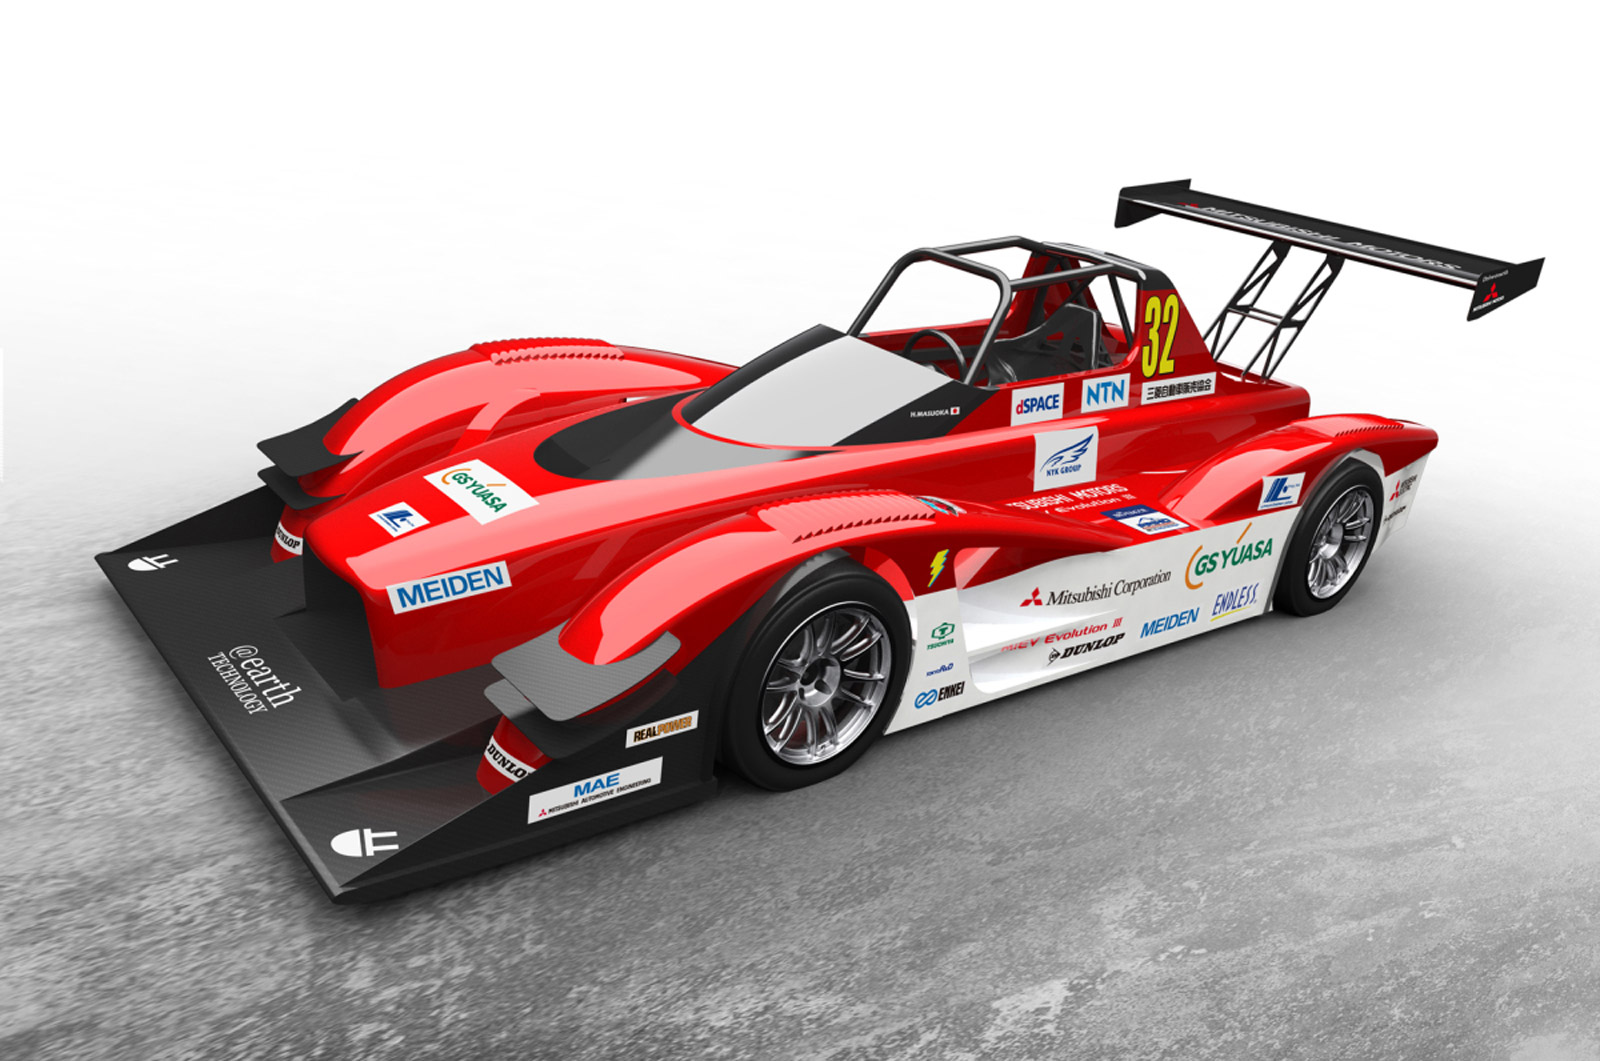 Mitsubishi Gears Up For 2014 Pikes Peak With 603-HP Electric Racer